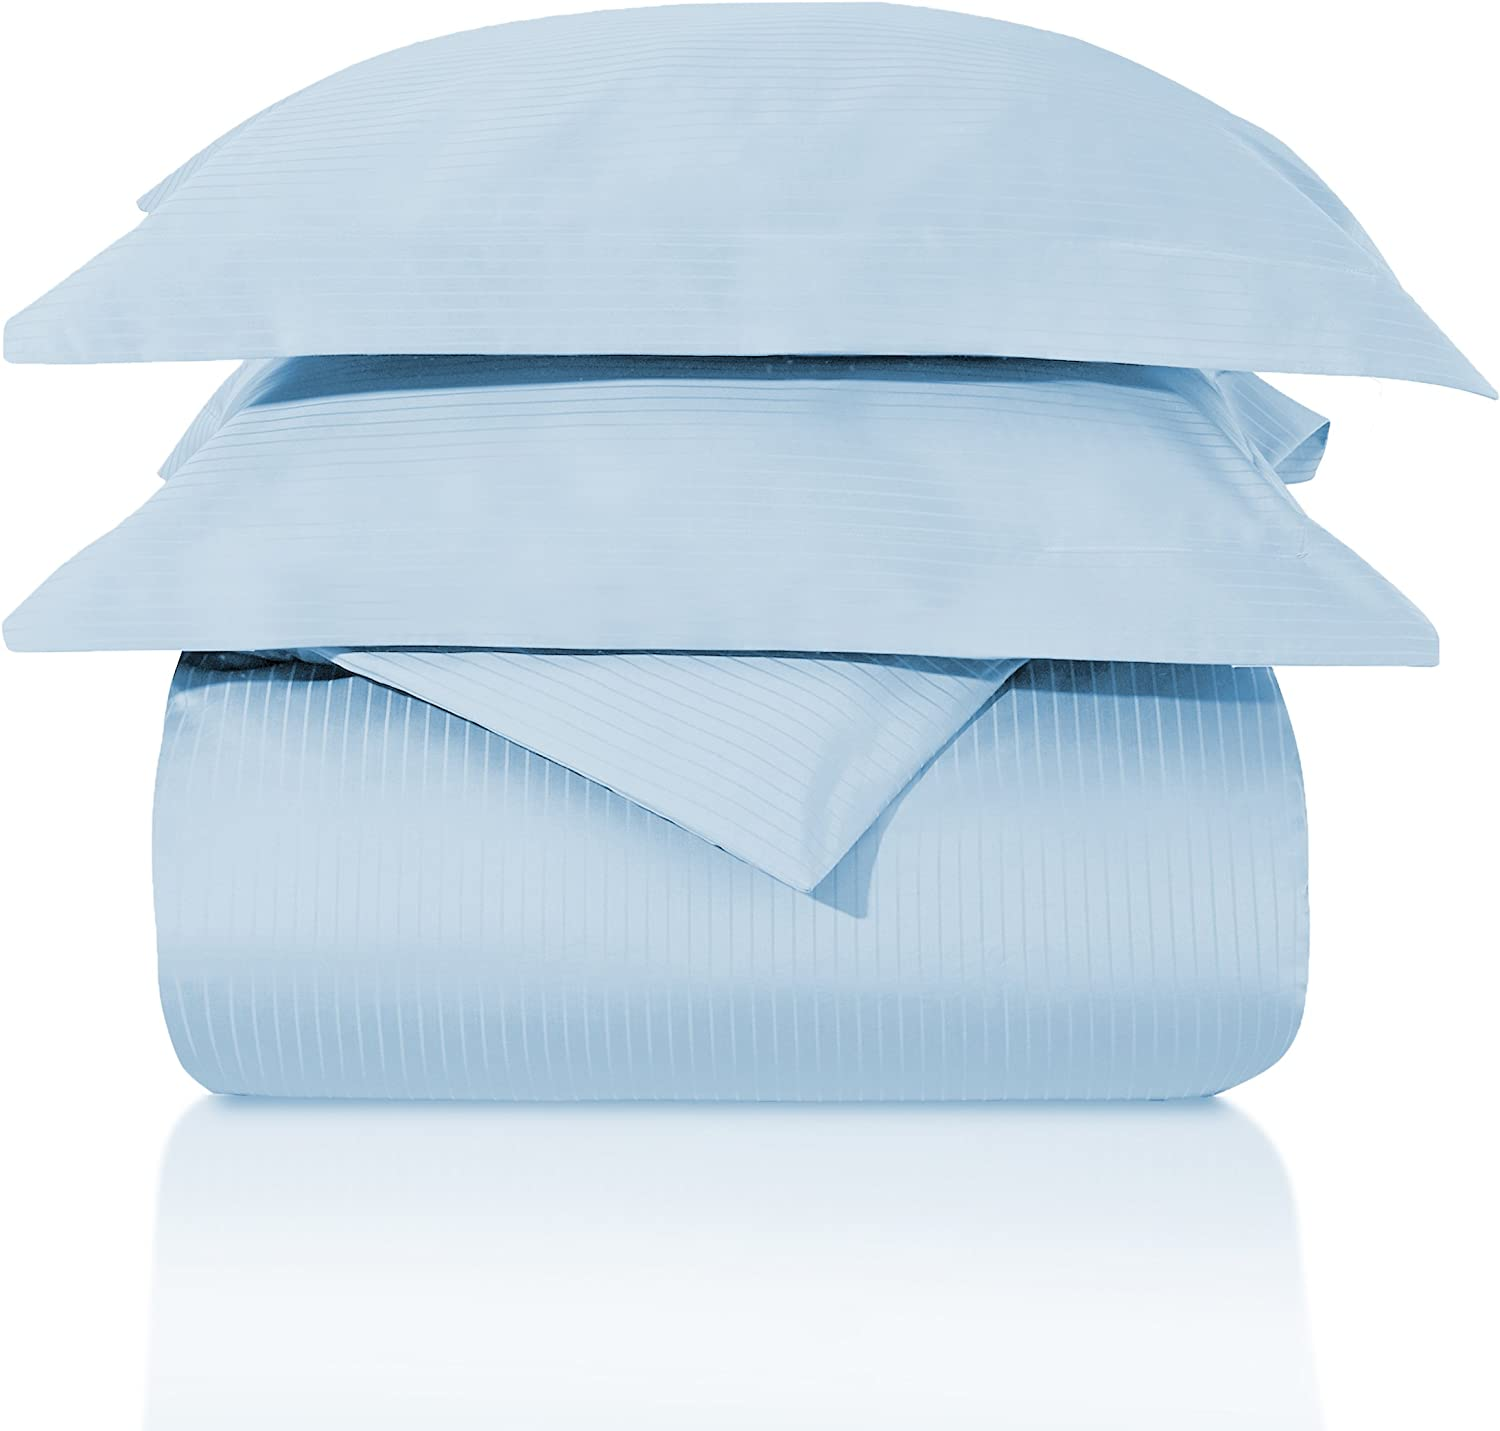 SUPERIOR Striped 1000-Thread Duvet Cover Set Egyptian Cotton K Limited price 35% OFF sale